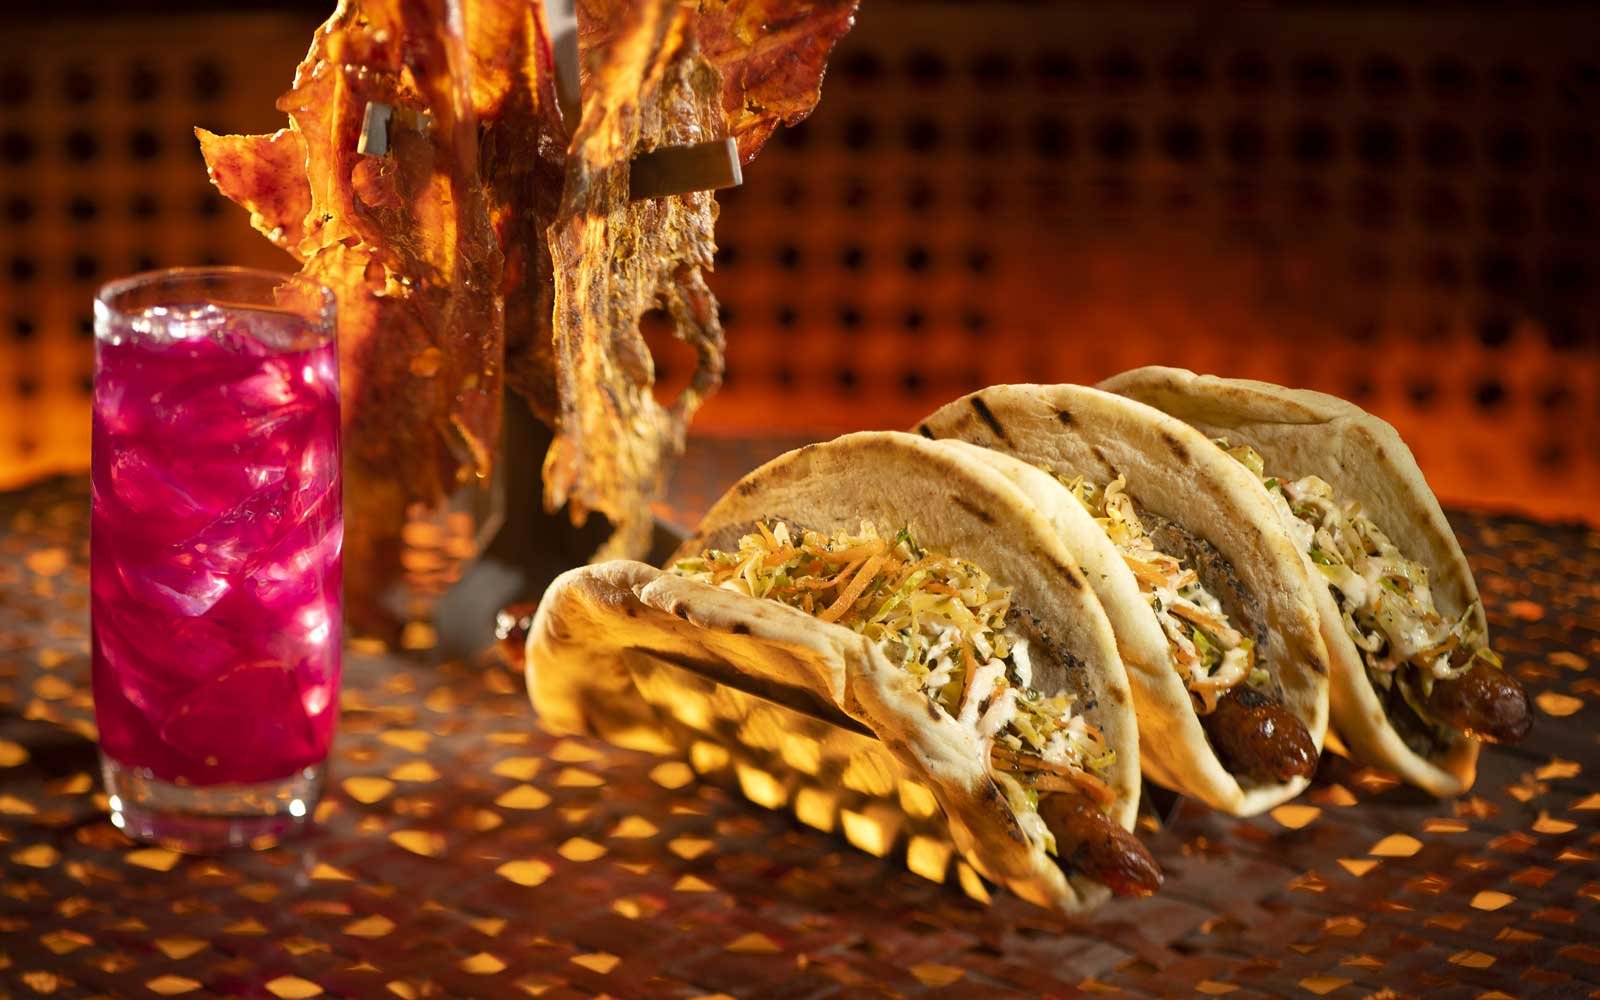 The Meiloorun Juice, the Turkey Jerky and the Ronto Wrap filled with spiced grilled sausage and roasted pork found at Ronto Roasters, located in the Black Spire Outpost market inside Star Wars: Galaxy's Edge.